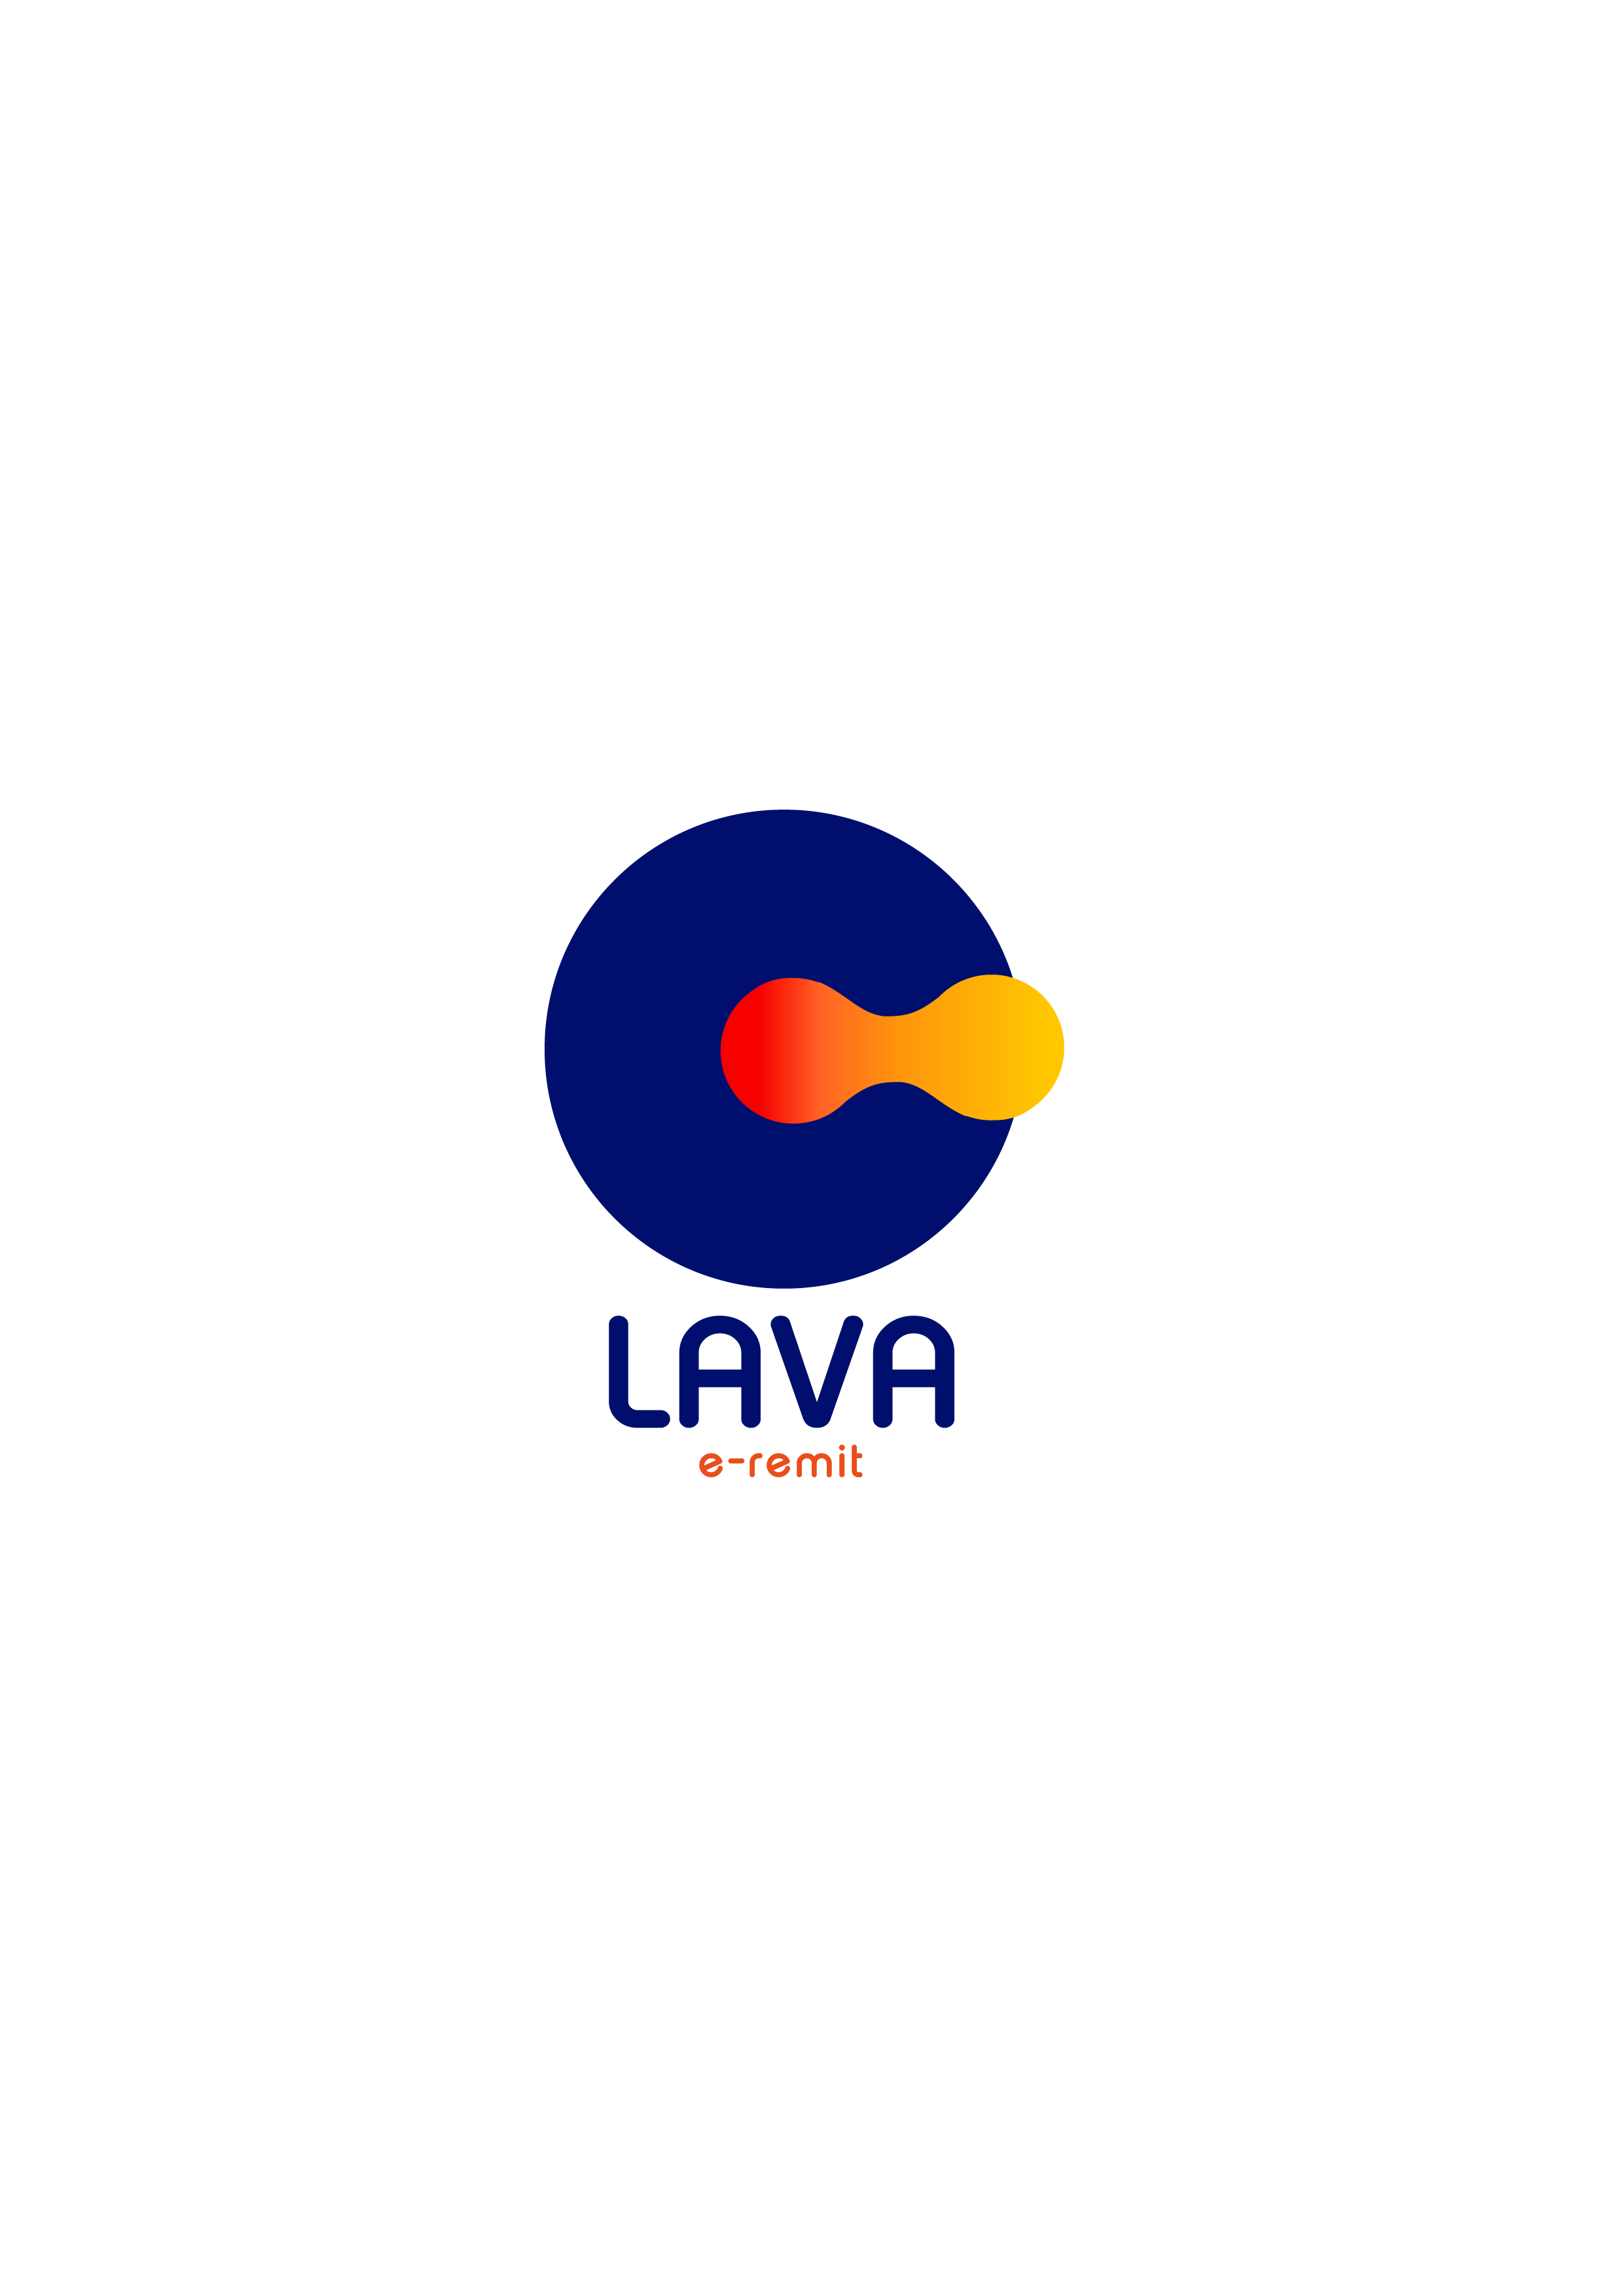 Start Up Lava E-Remit Set To Launch And Revolutionise Money Transfer Market